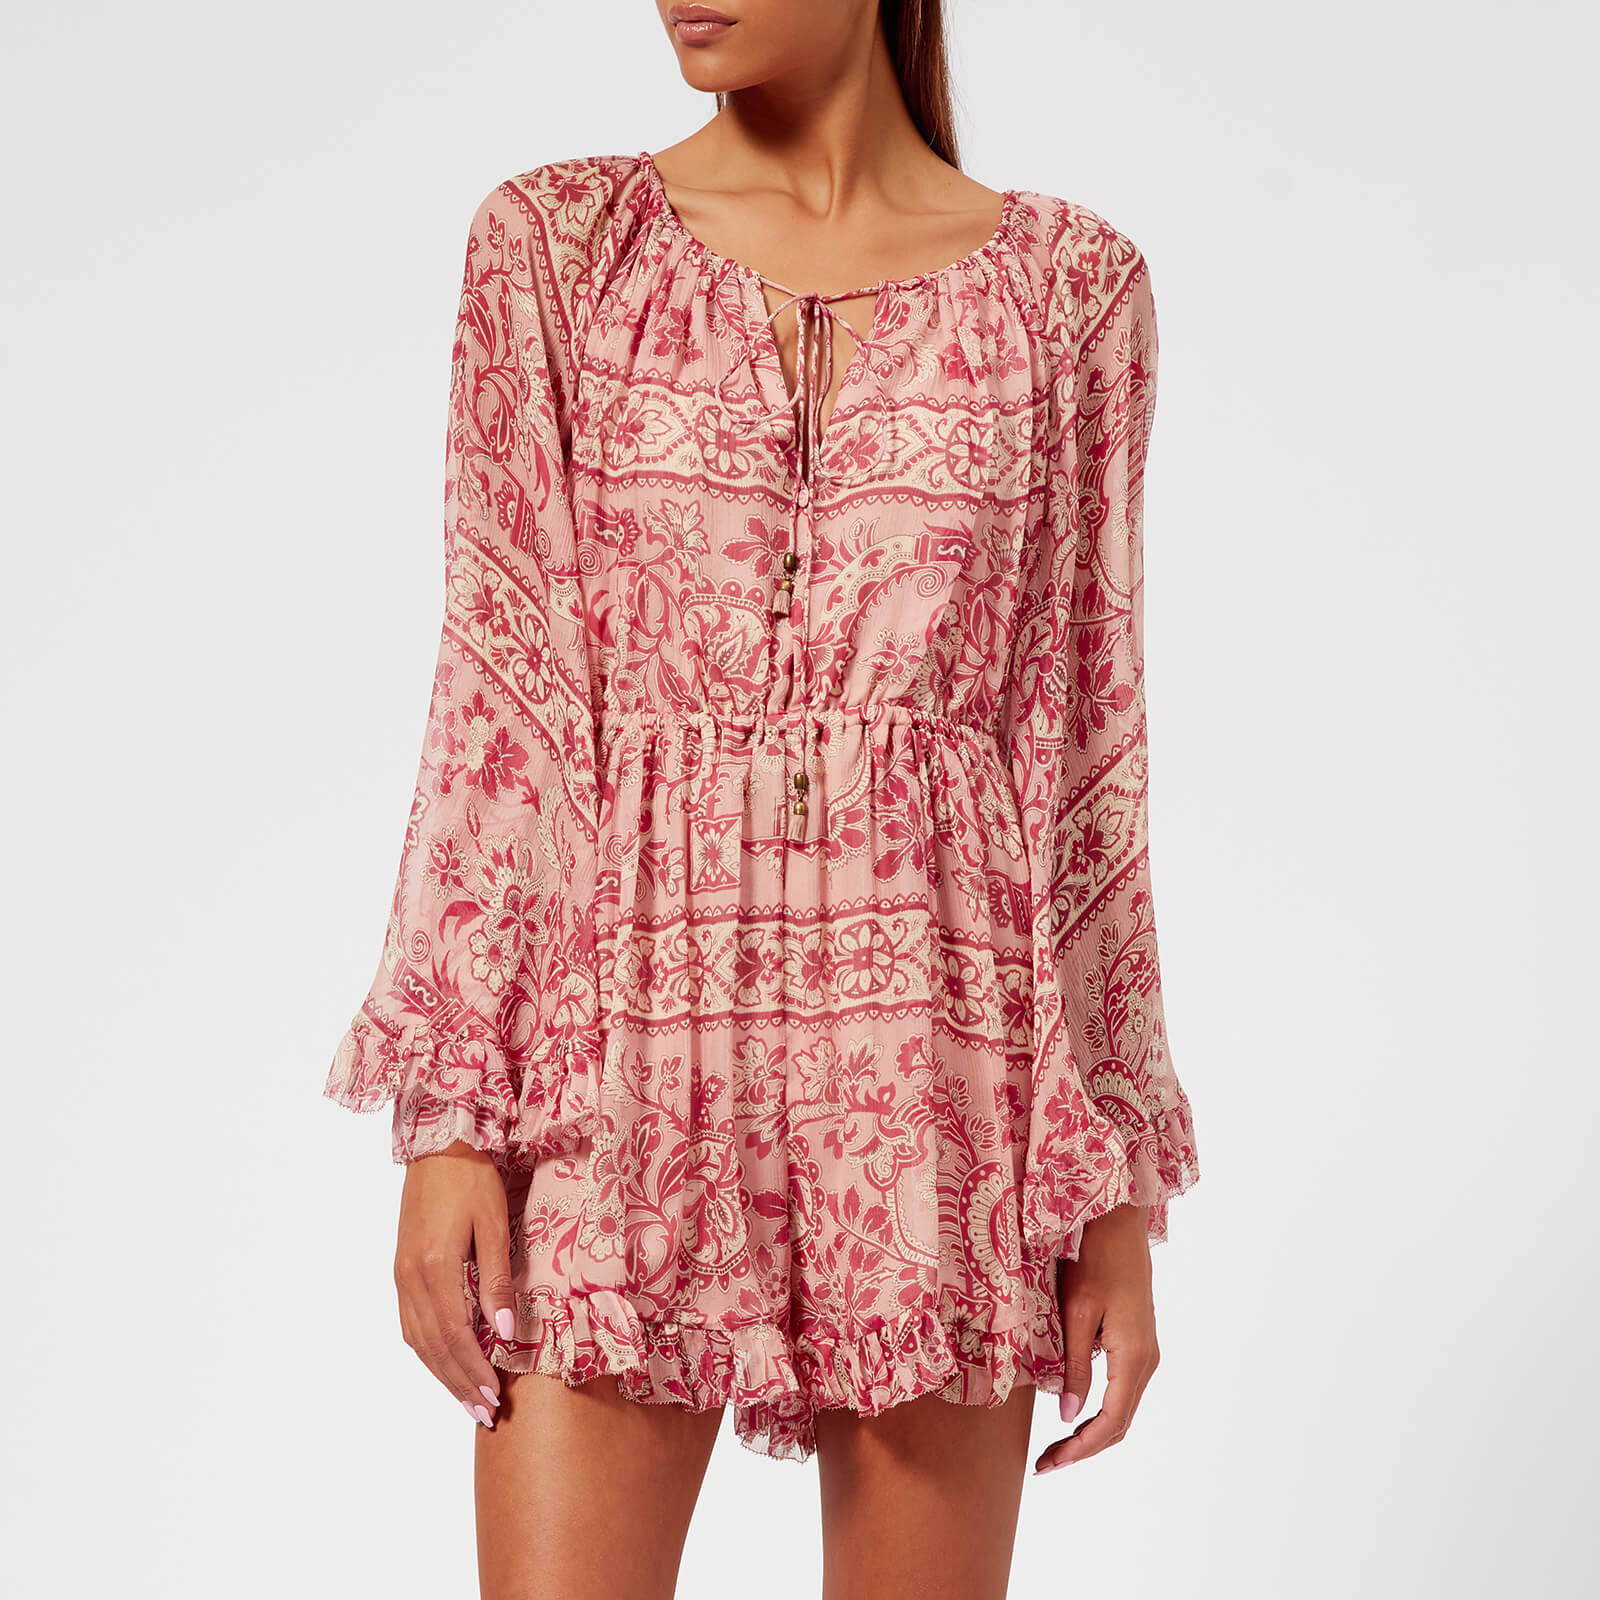 579be5eb7c Zimmermann Women s Castile Flared Sleeve Playsuit - Filigree Stripe - Free  UK Delivery over £50